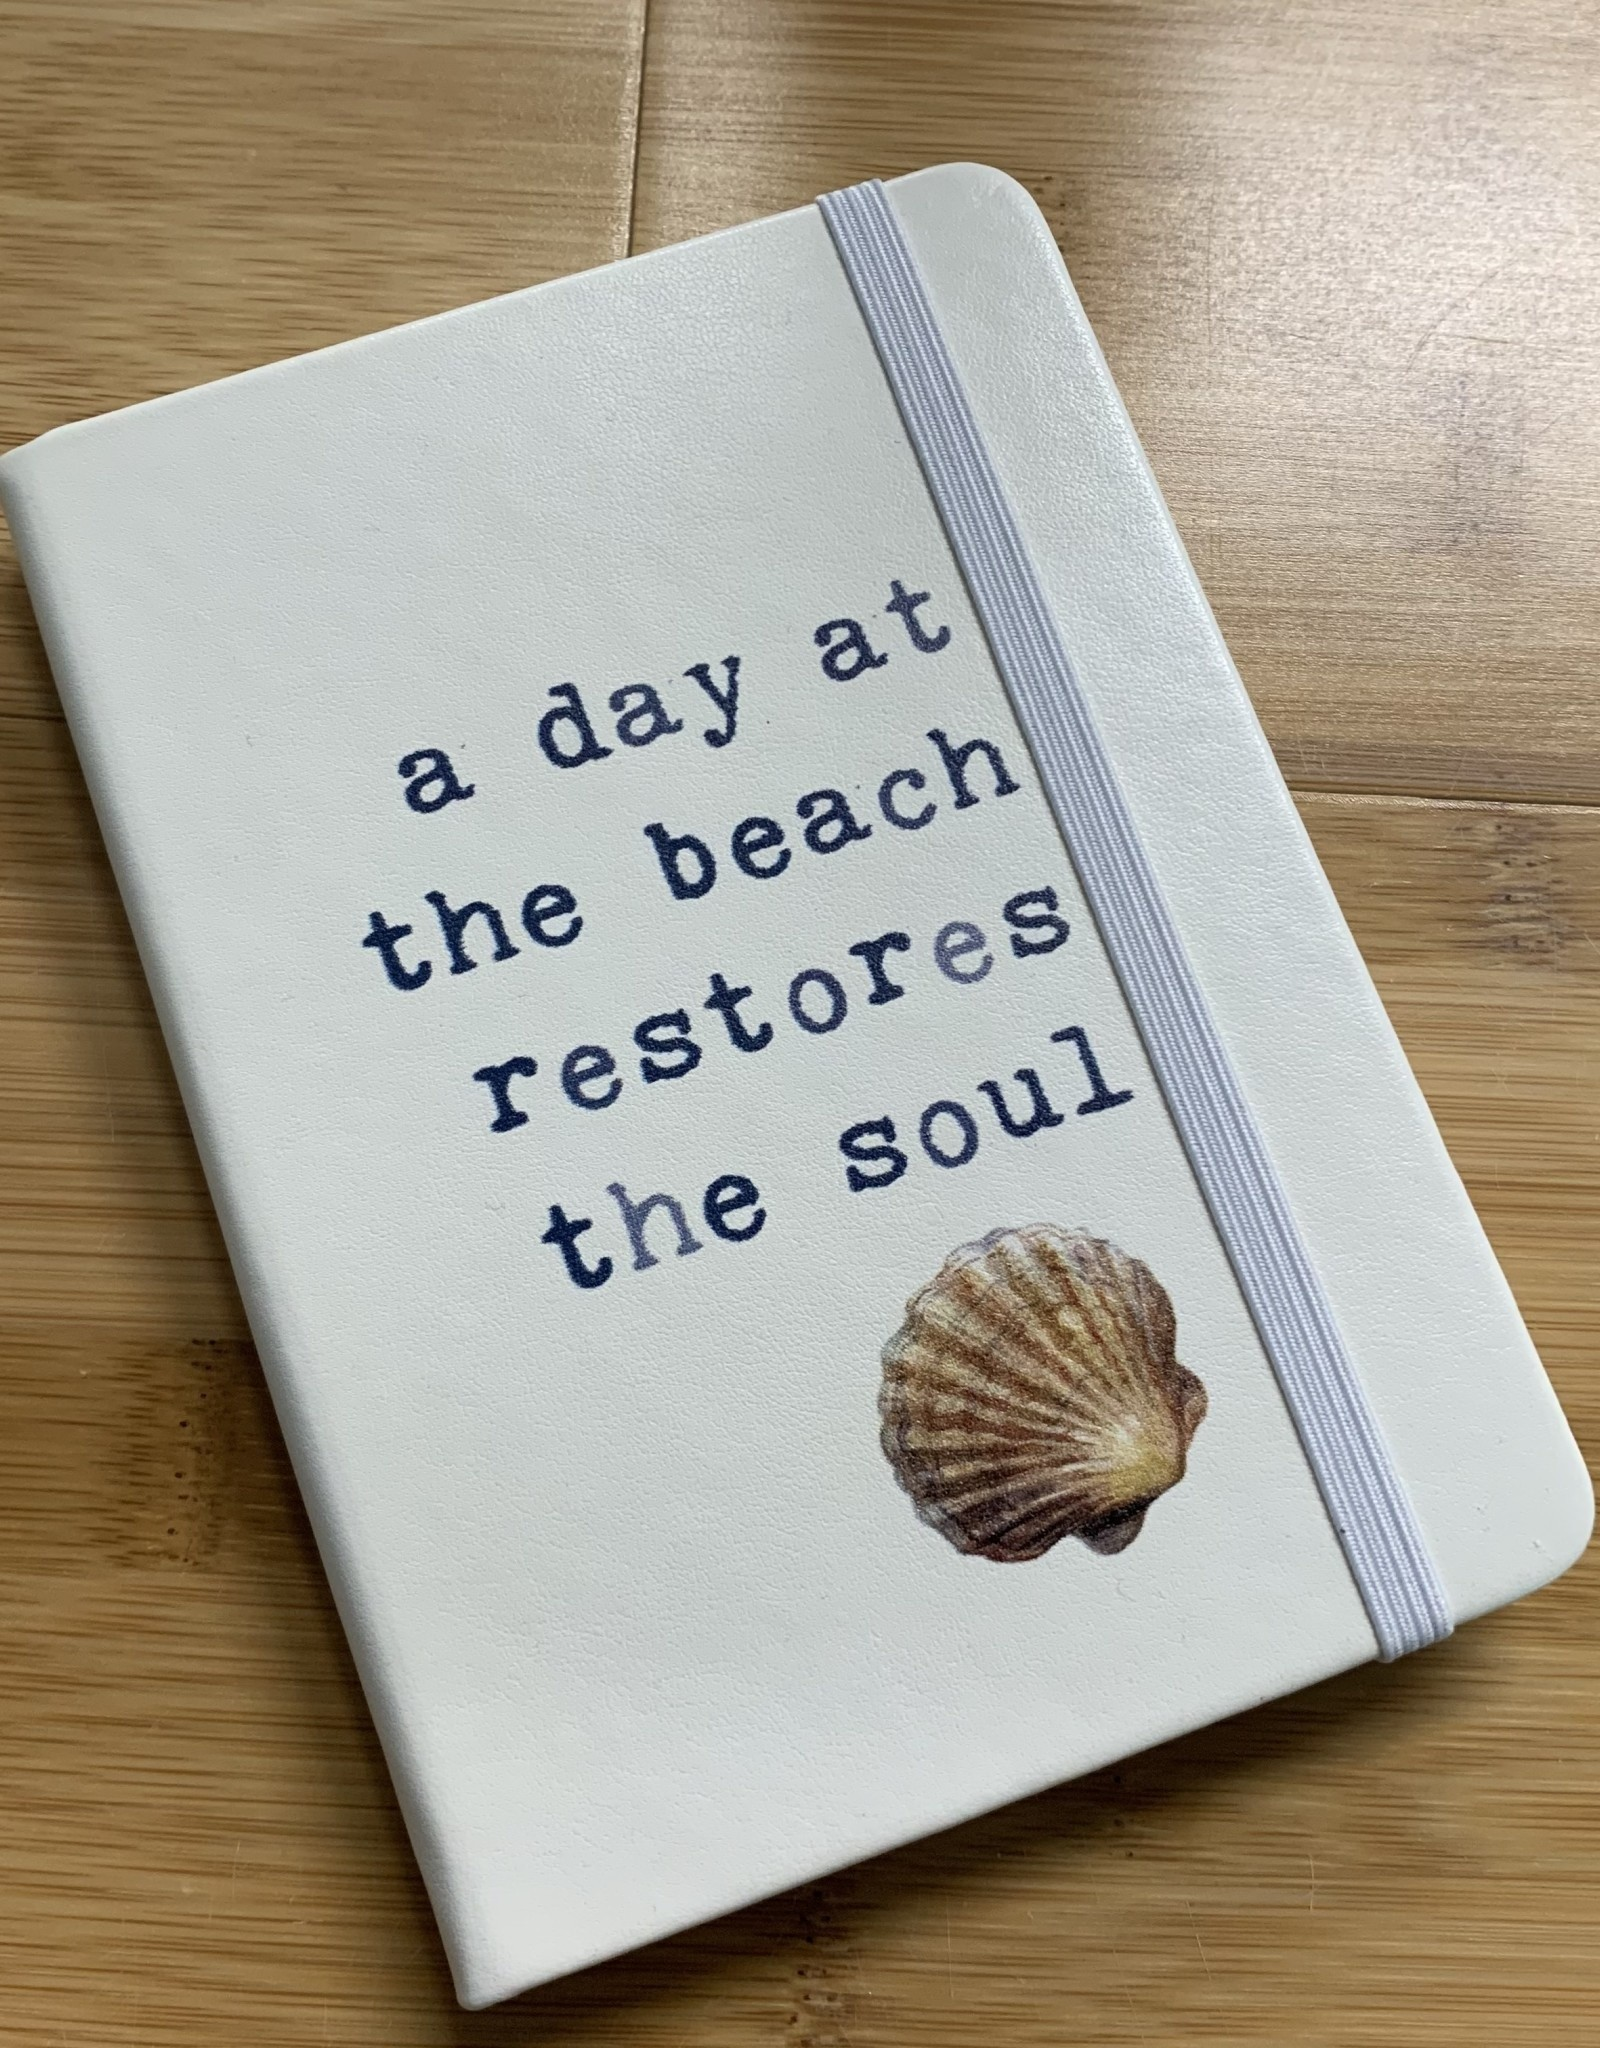 JOURNAL A DAY AT THE BEACH